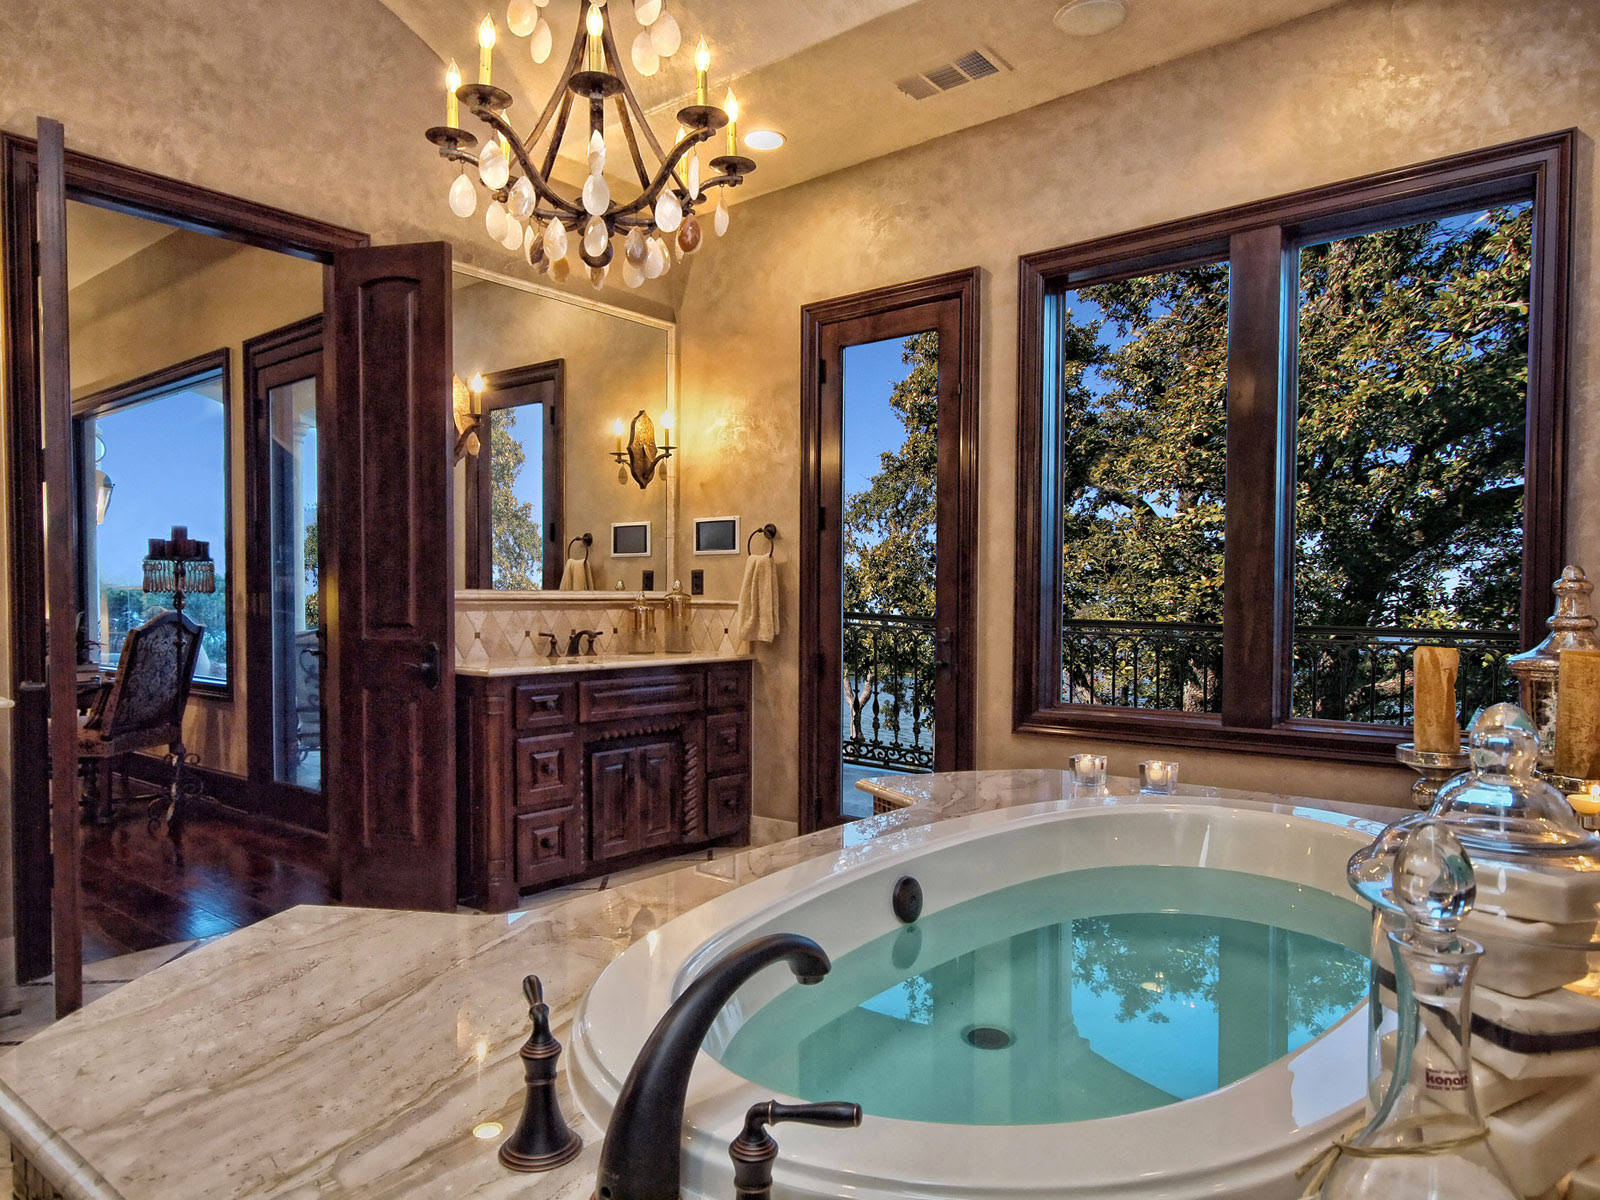 Marvelous And Fabulous Bathroom Design Ideas - The WoW Style